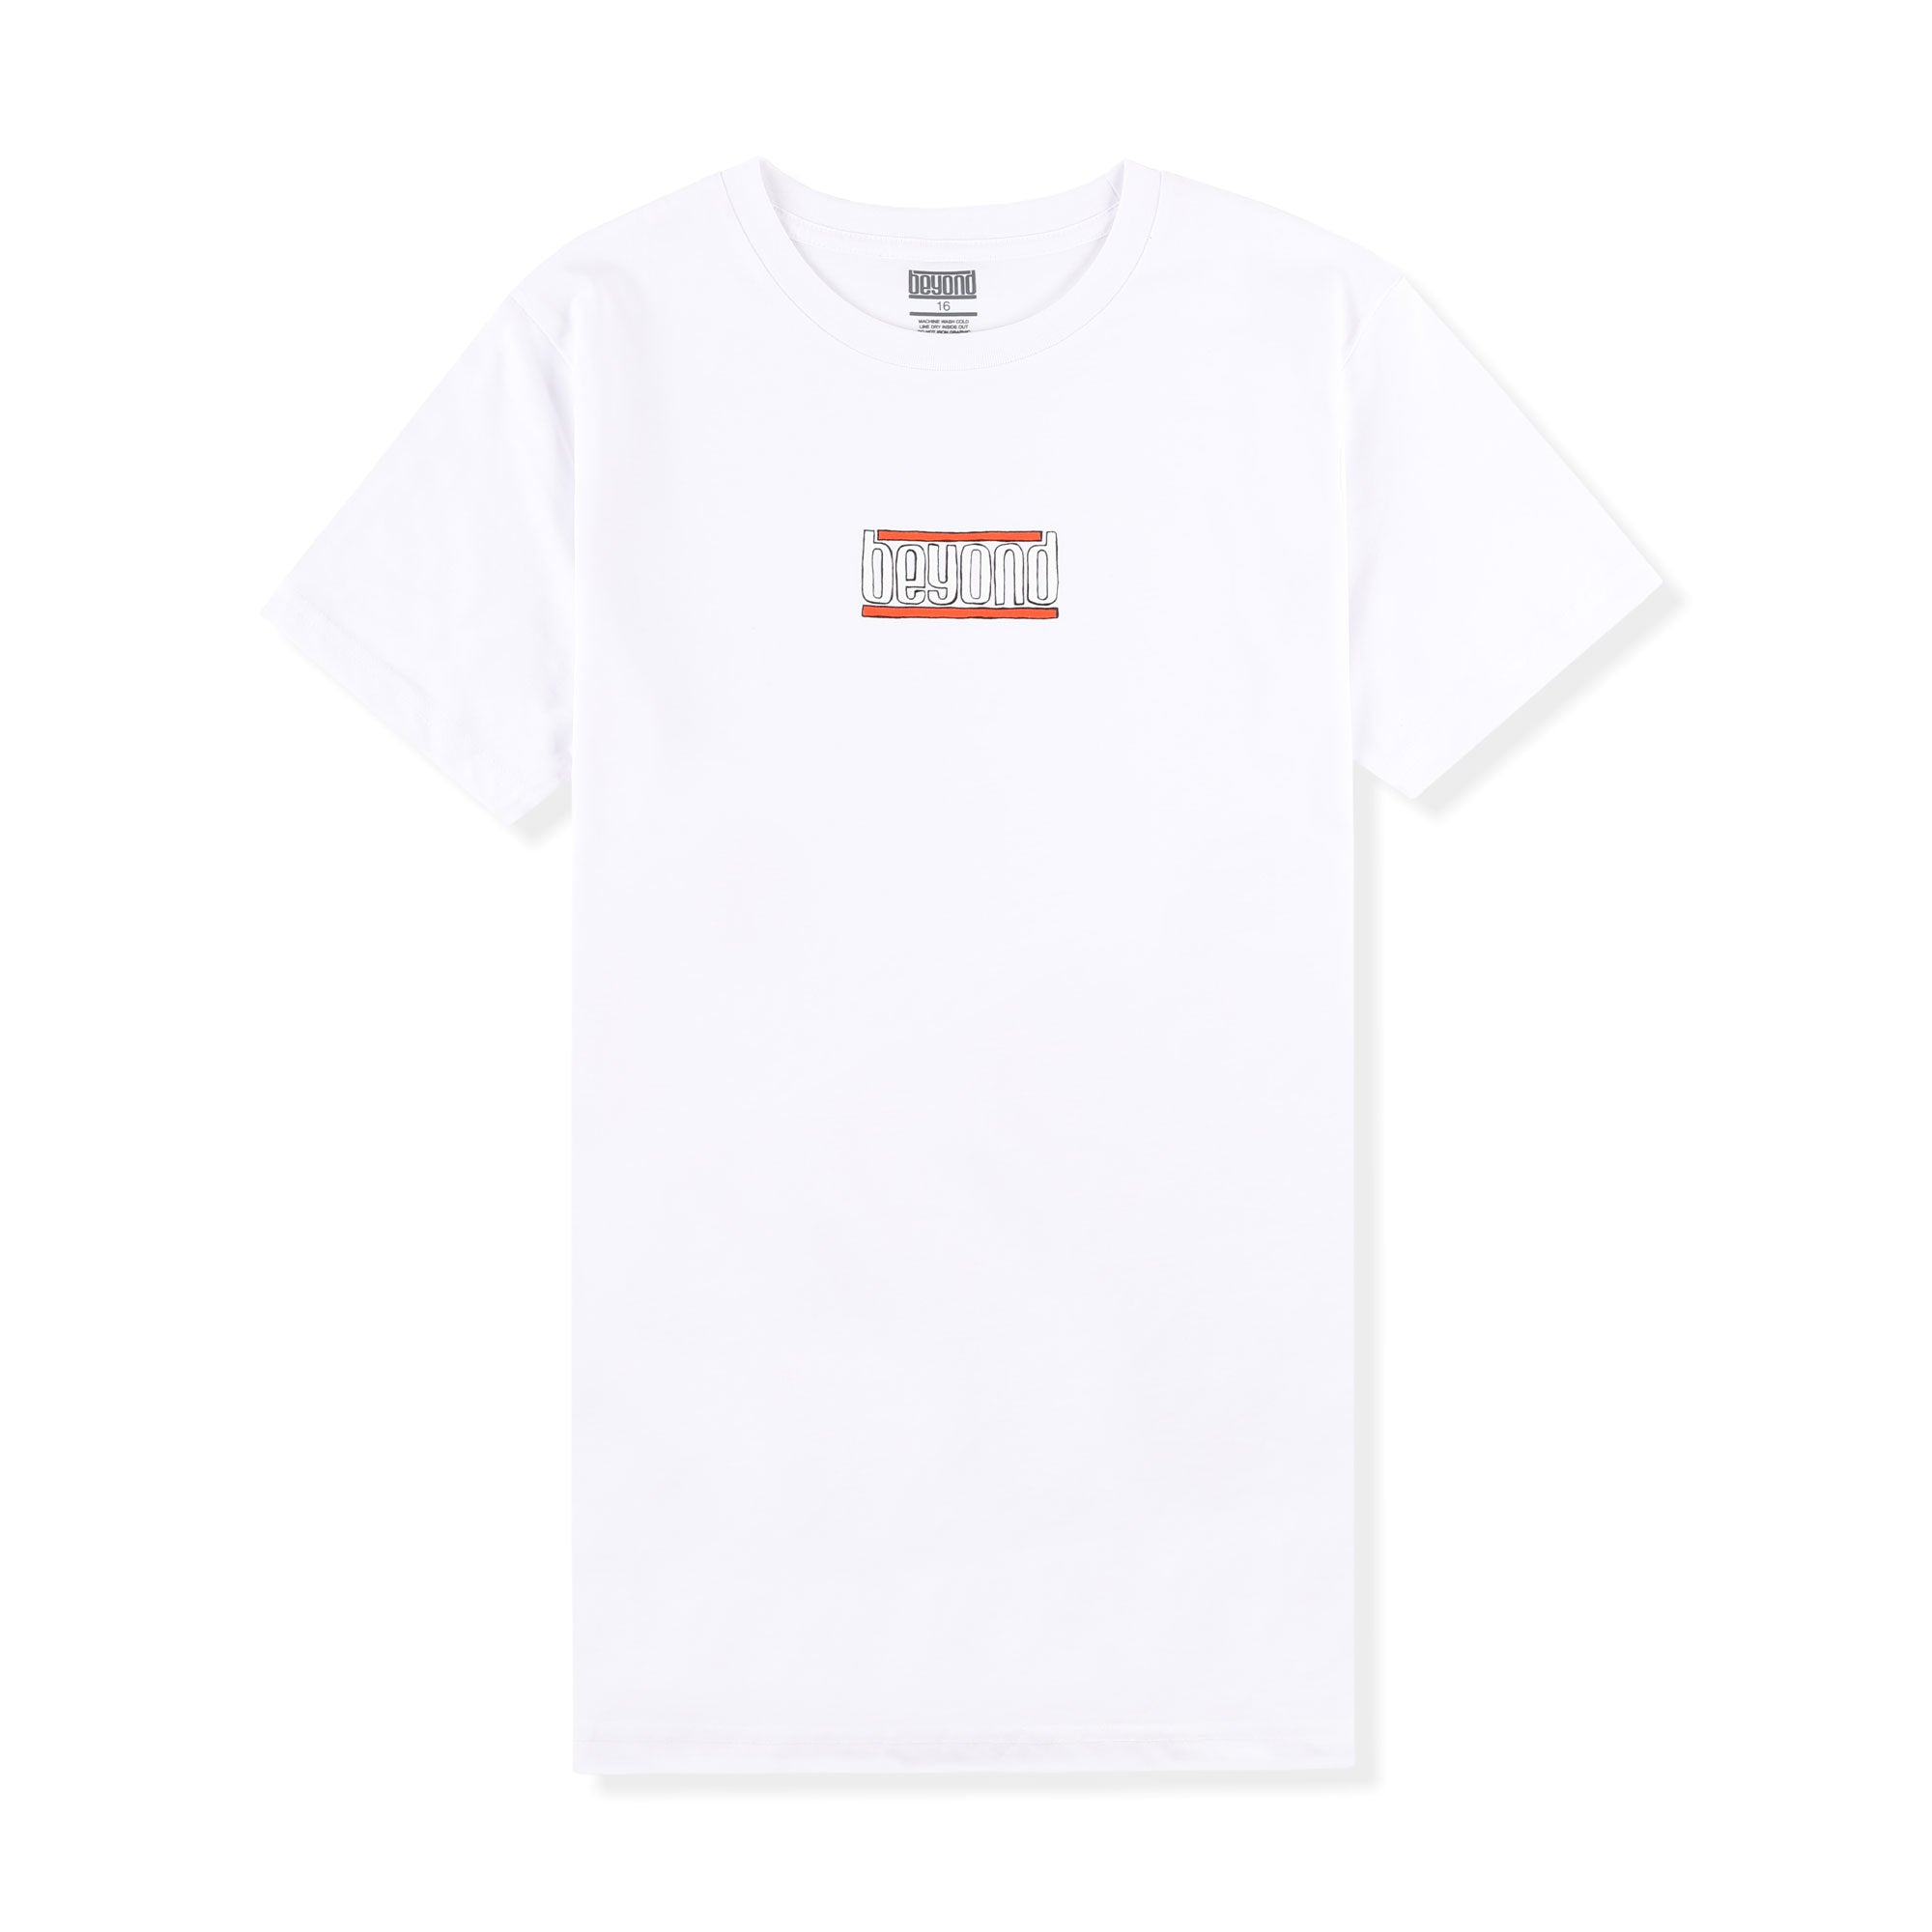 Beyond HD Logo Tee (Youth) Product Photo #1